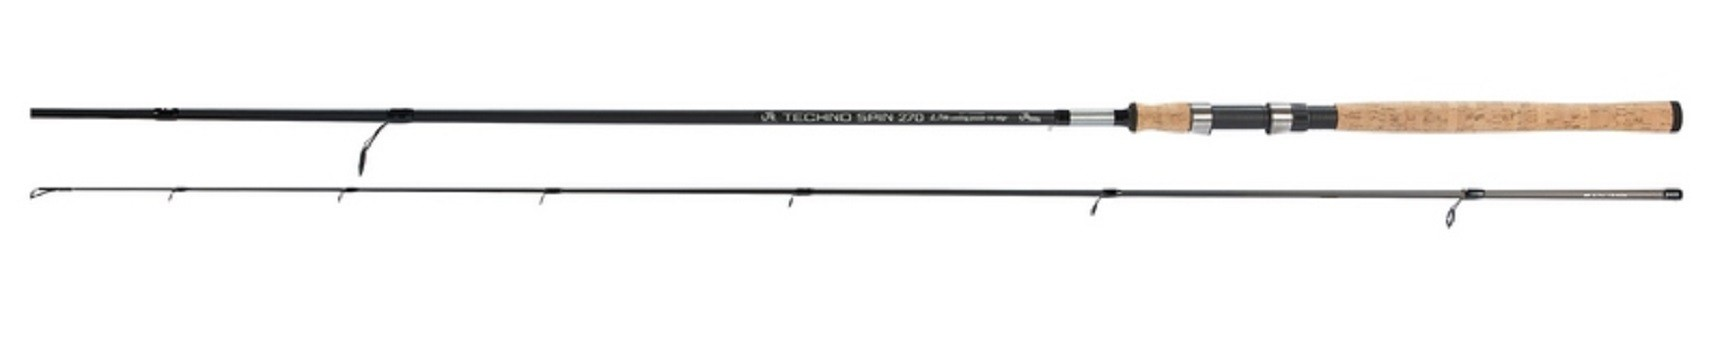 Techno Spin 3m 20-50 gr Fil Fishing štap